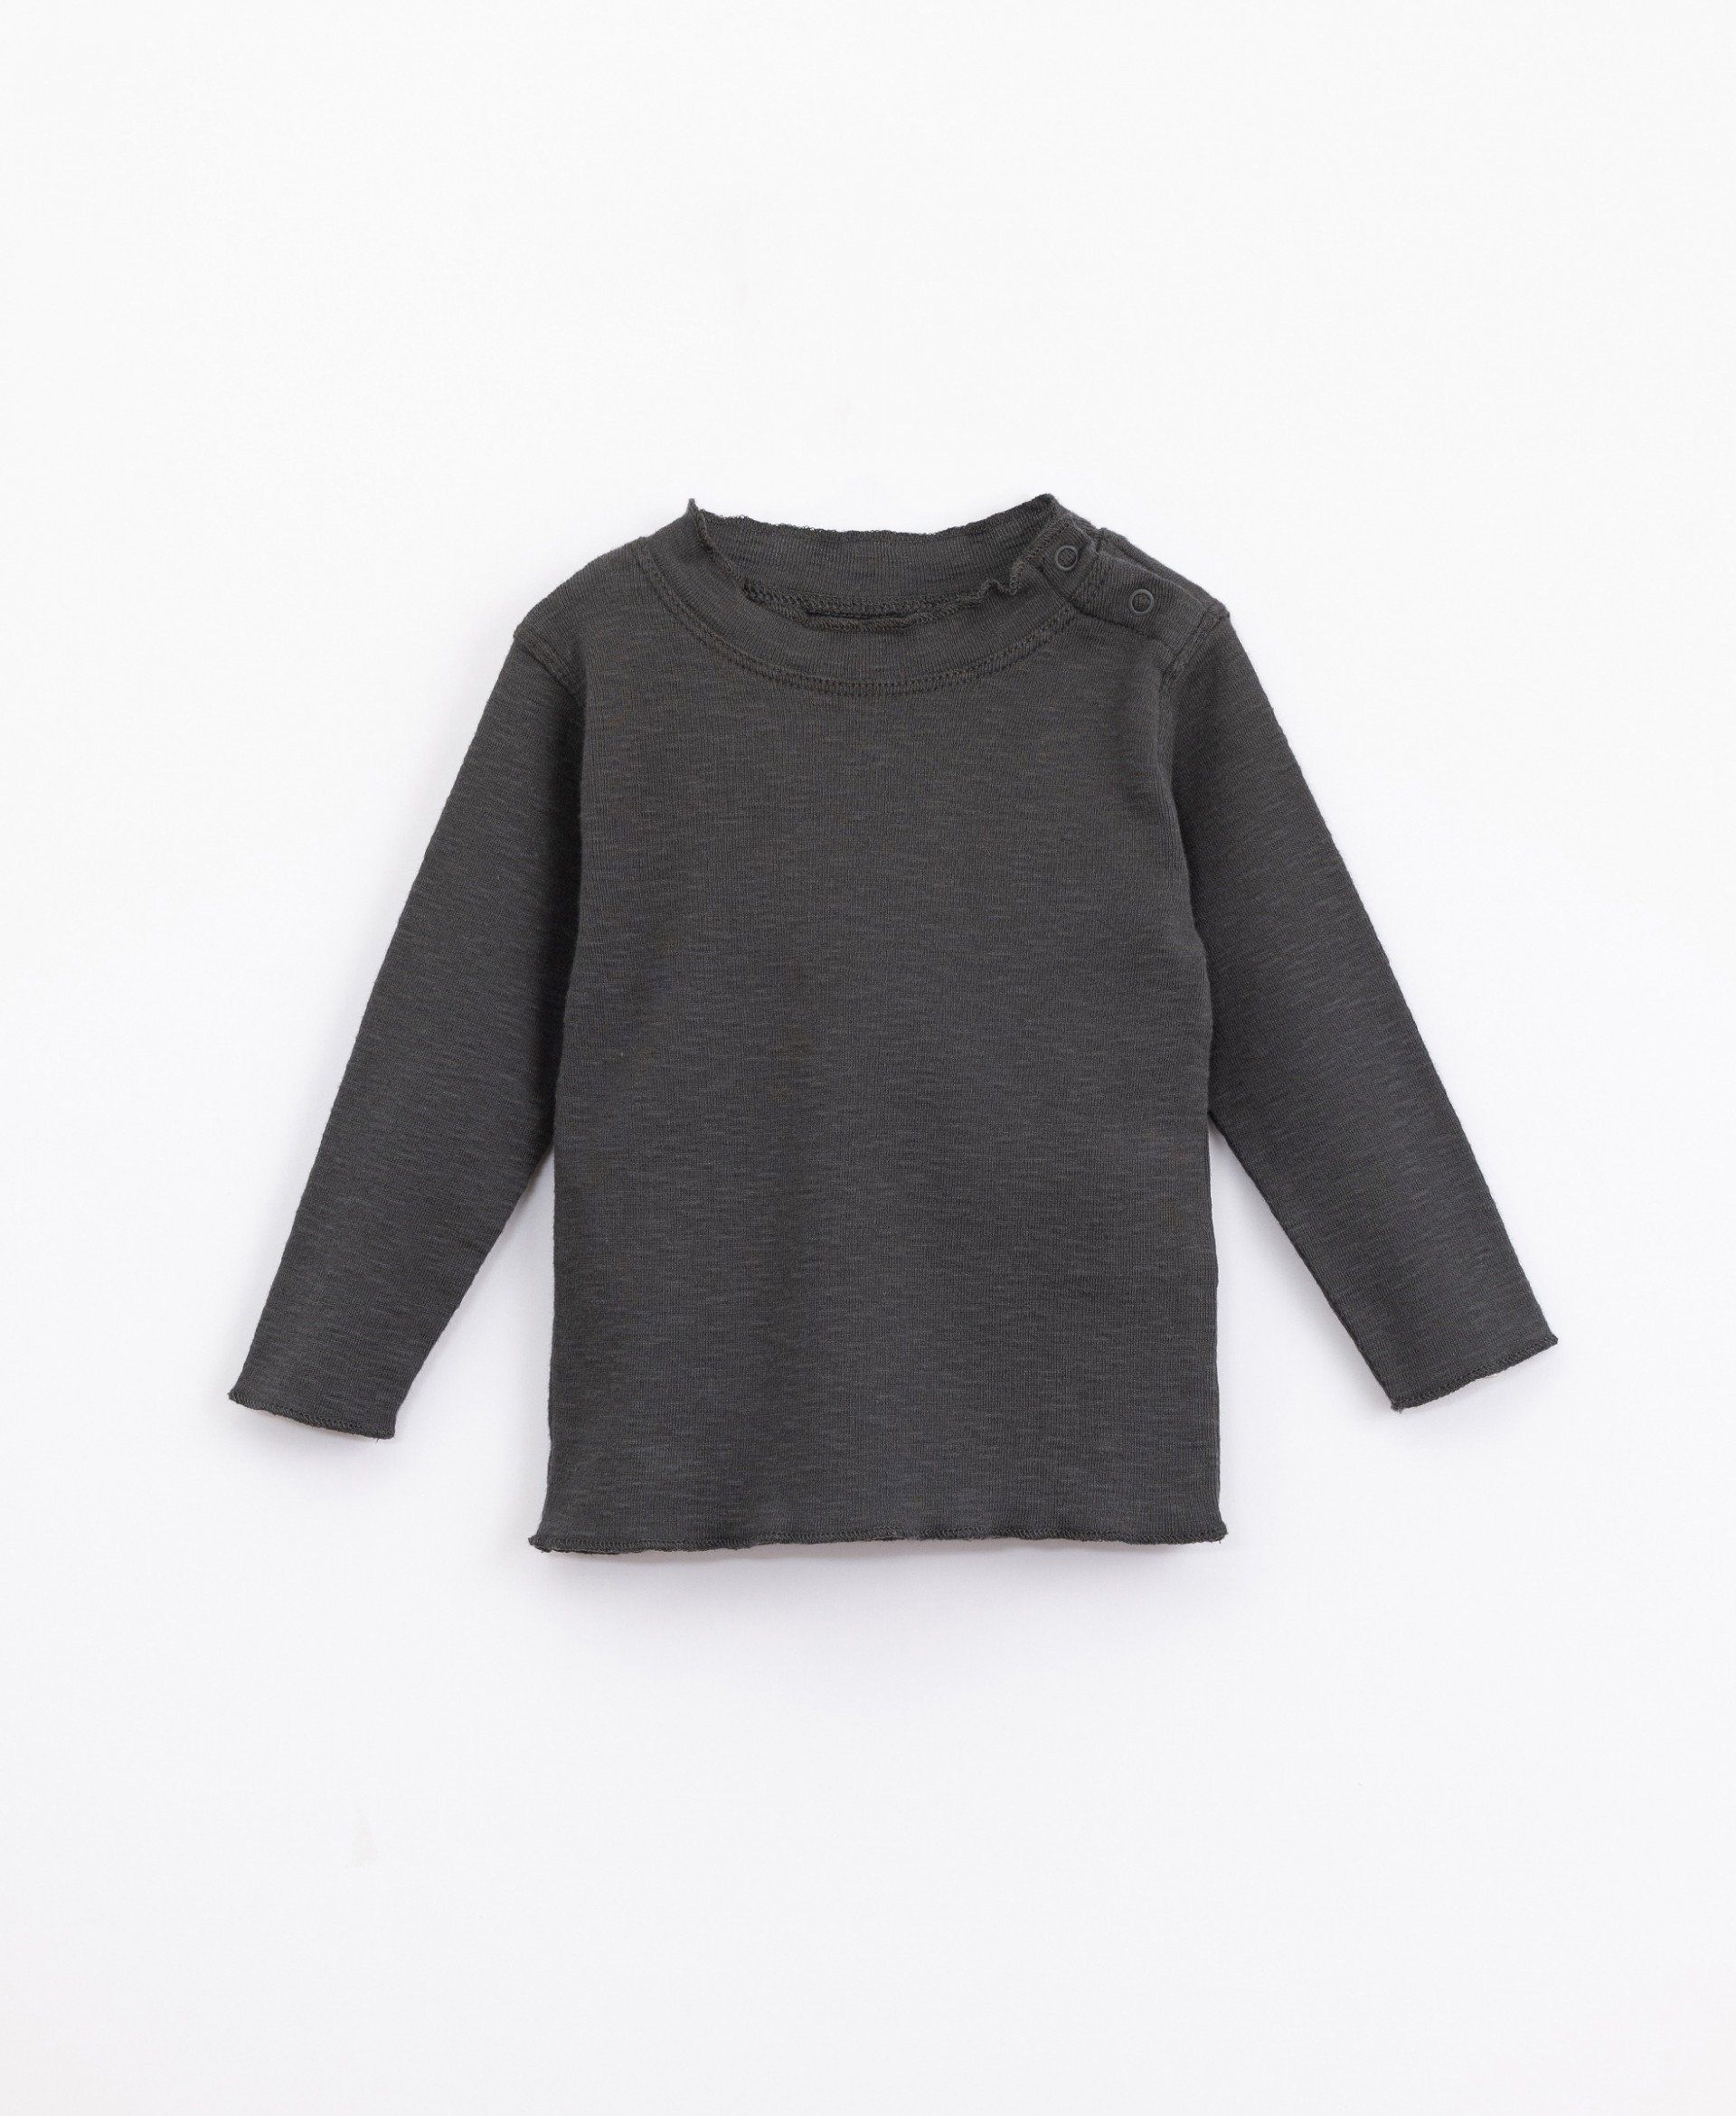 Jersey with roll-neck | Illustration